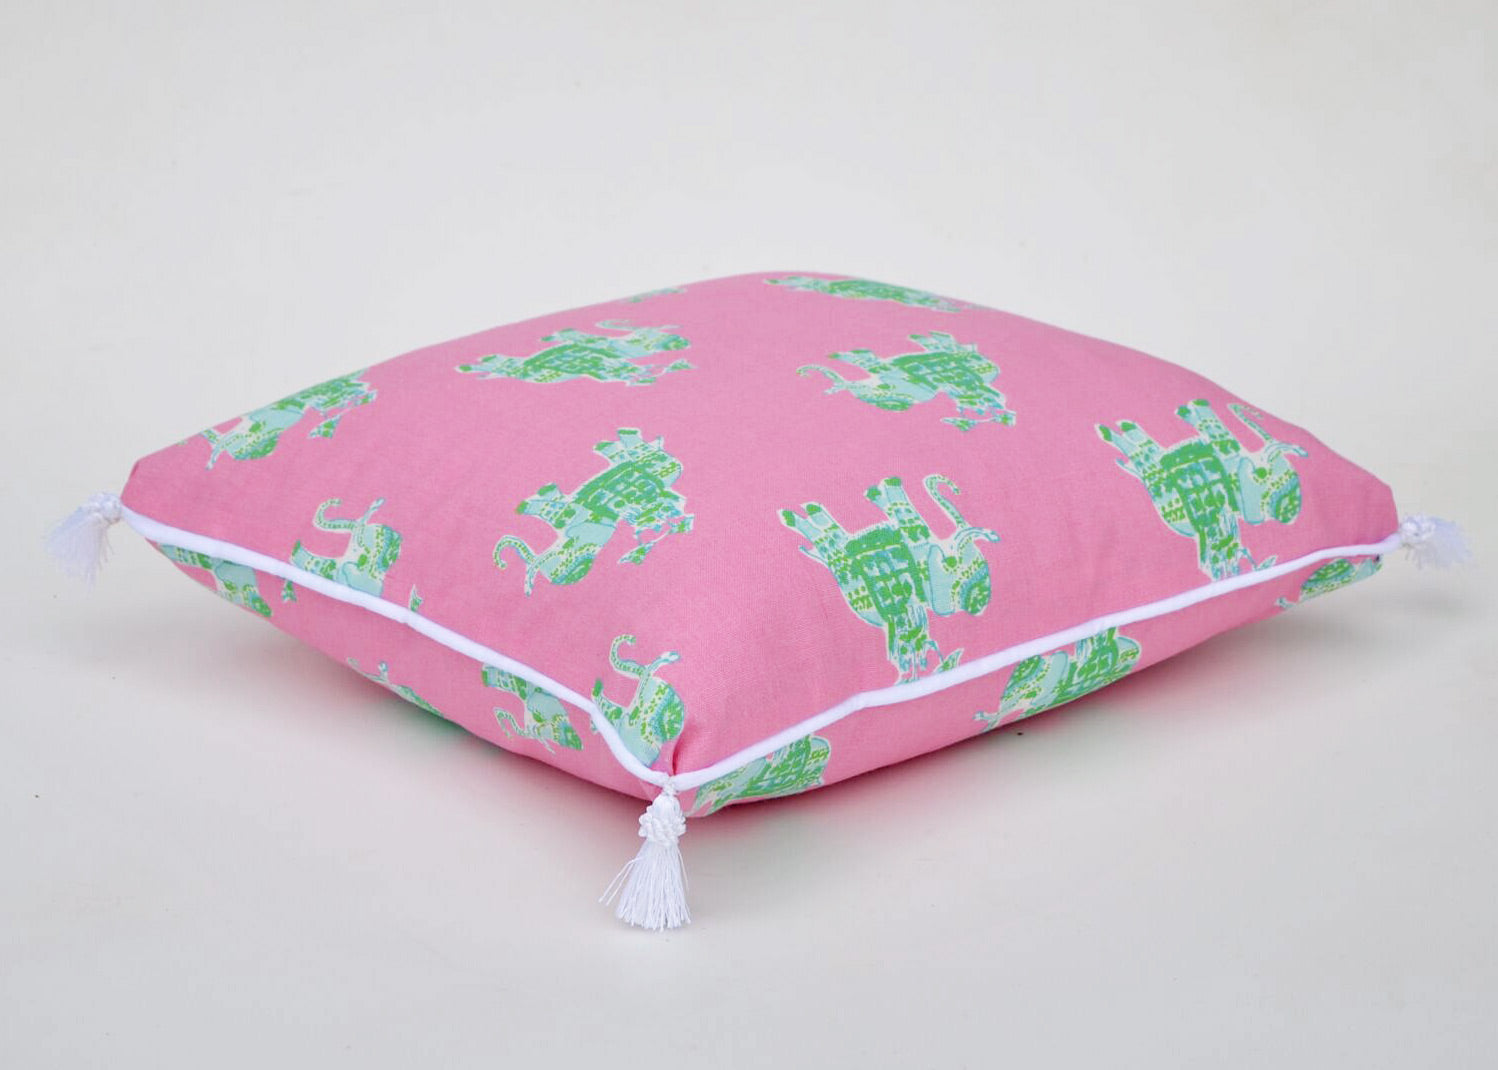 Lilly Pulitzer Bazaar Tiki Pink Elephant Pillow Cover